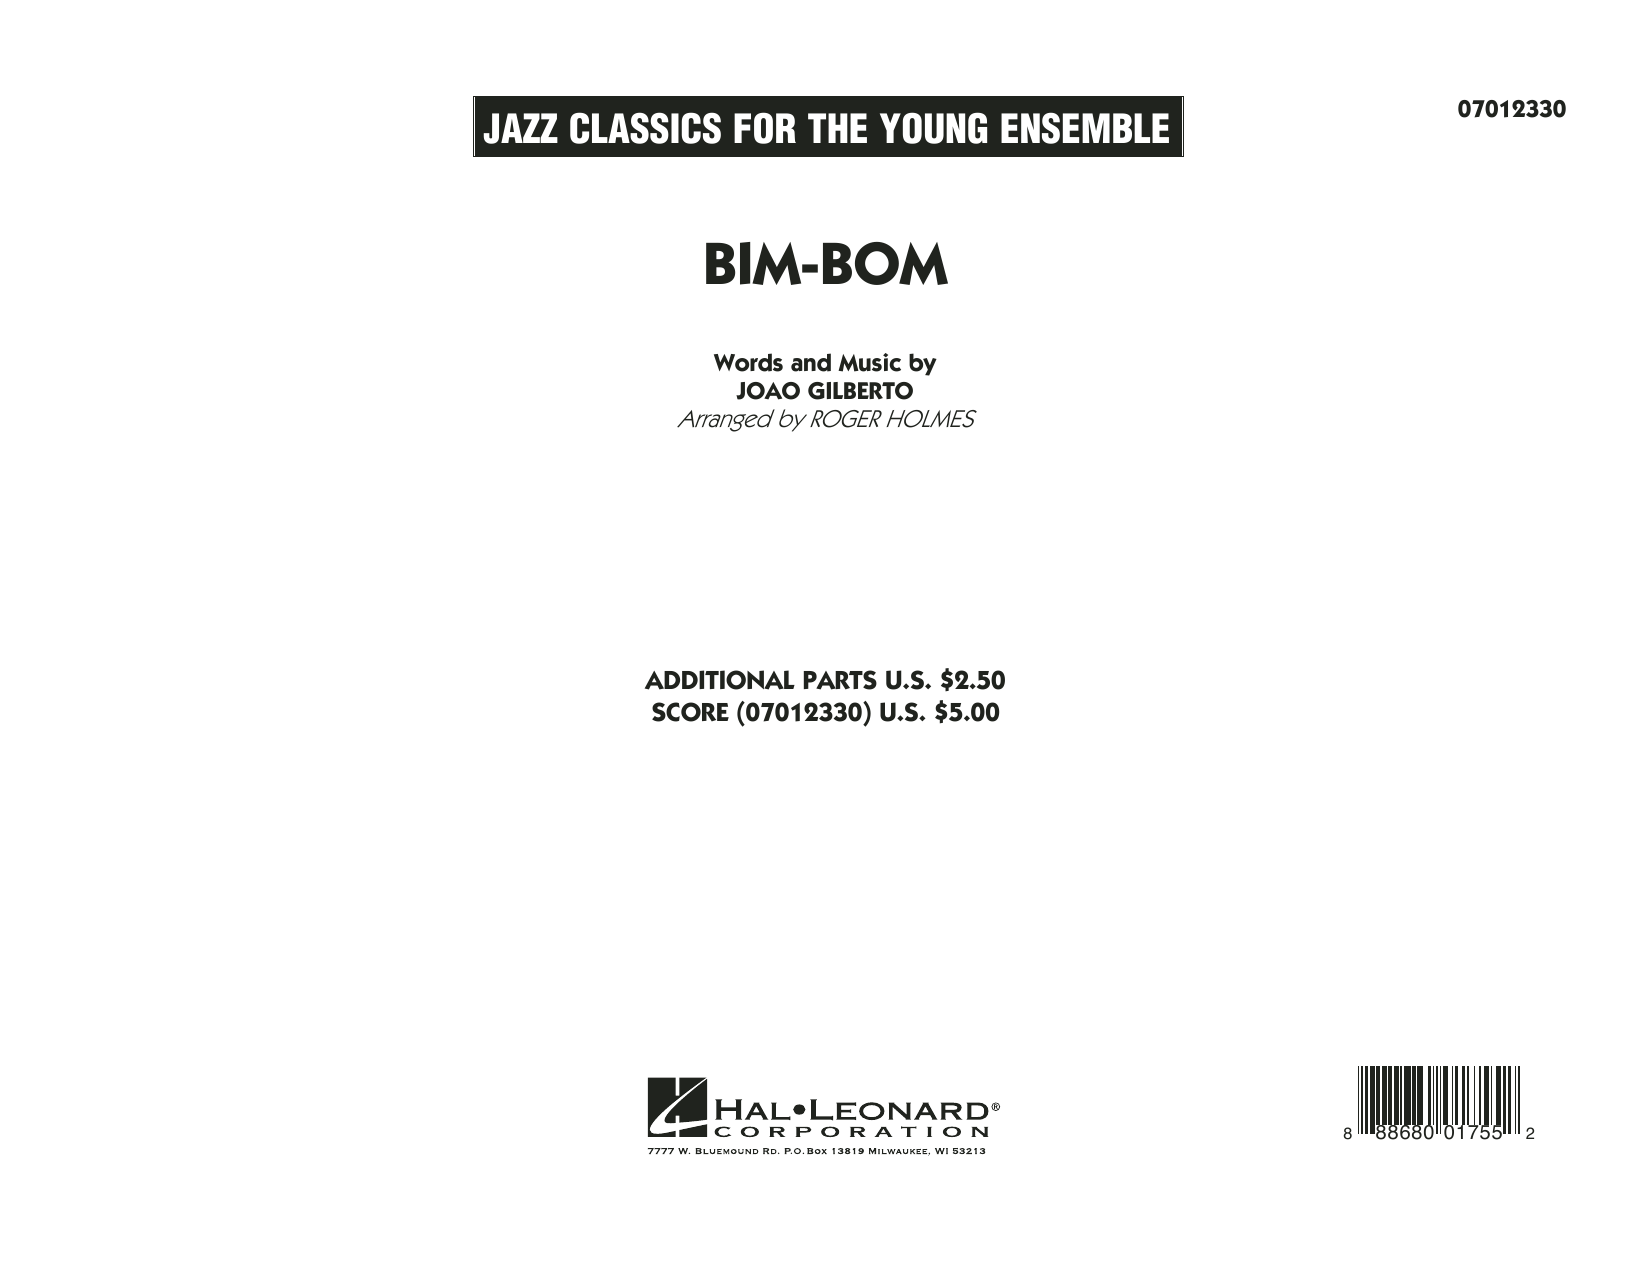 Roger Holmes Bim-Bom - Conductor Score (Full Score) sheet music notes and chords. Download Printable PDF.